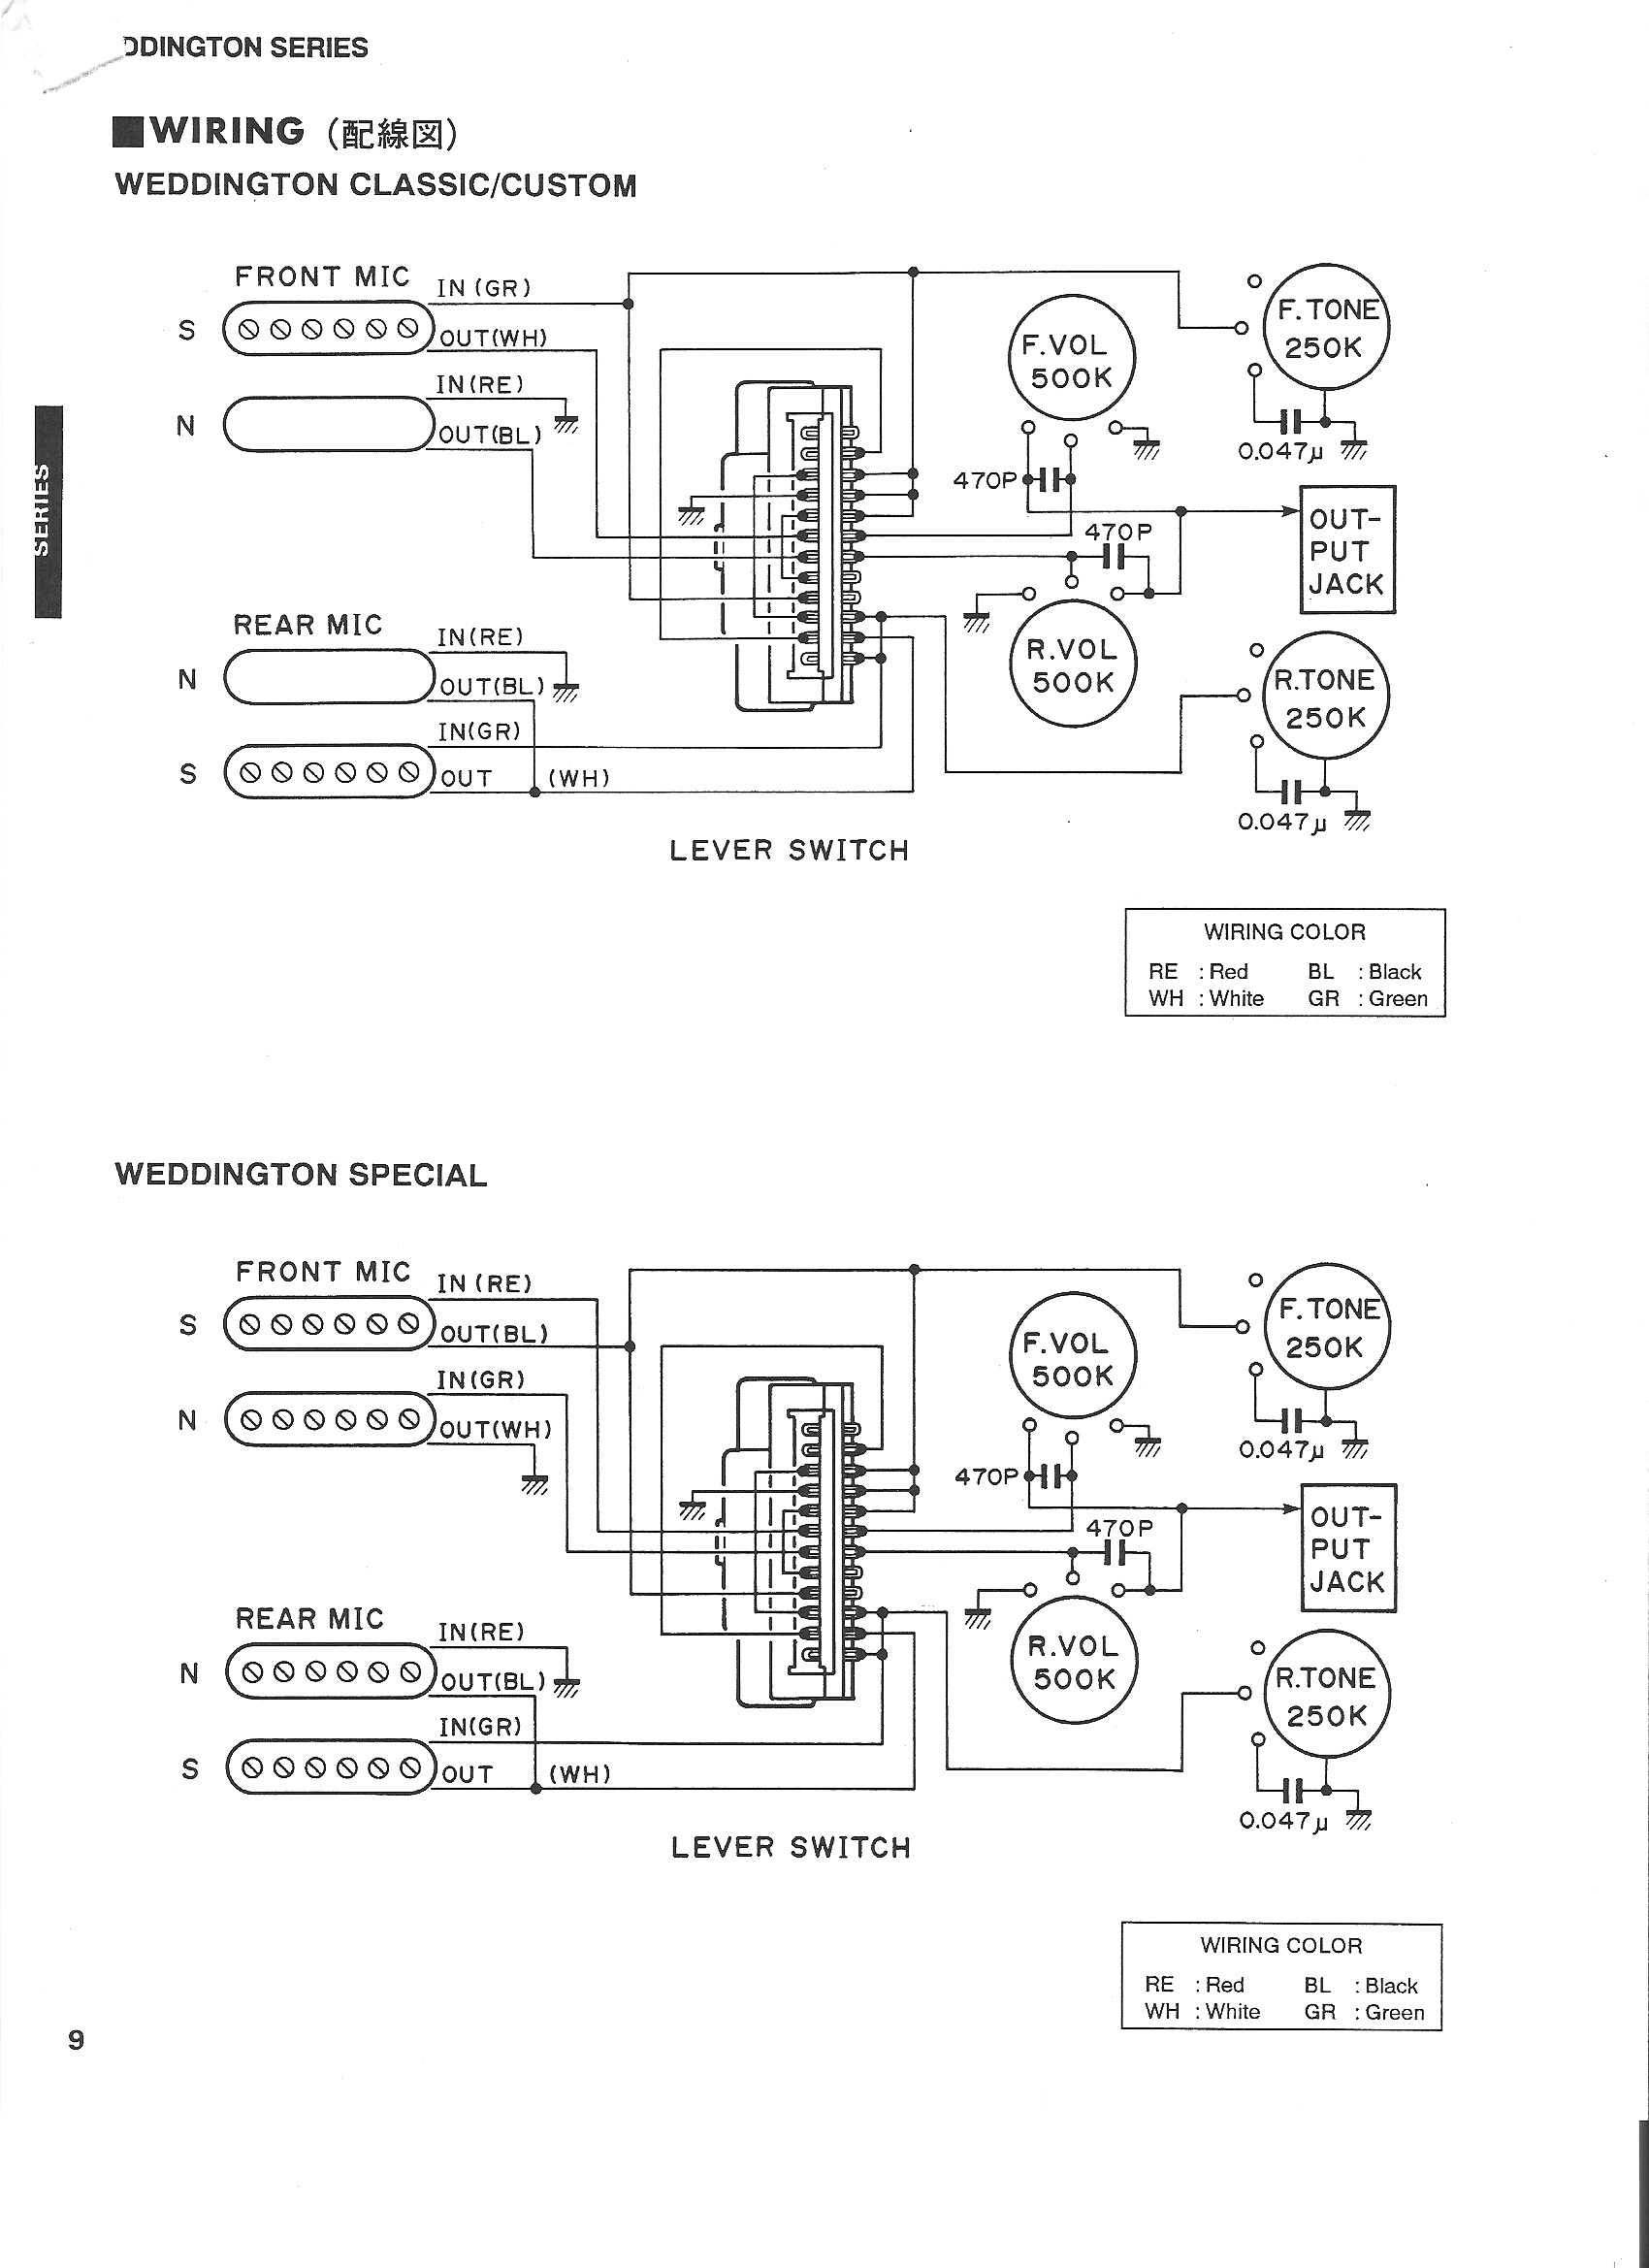 Yamaha Weddington Classic_Custom wiring diagram?resized665%2C915 yamaha pacifica 112 wiring diagram efcaviation com yamaha pacifica 112 wiring diagram at eliteediting.co